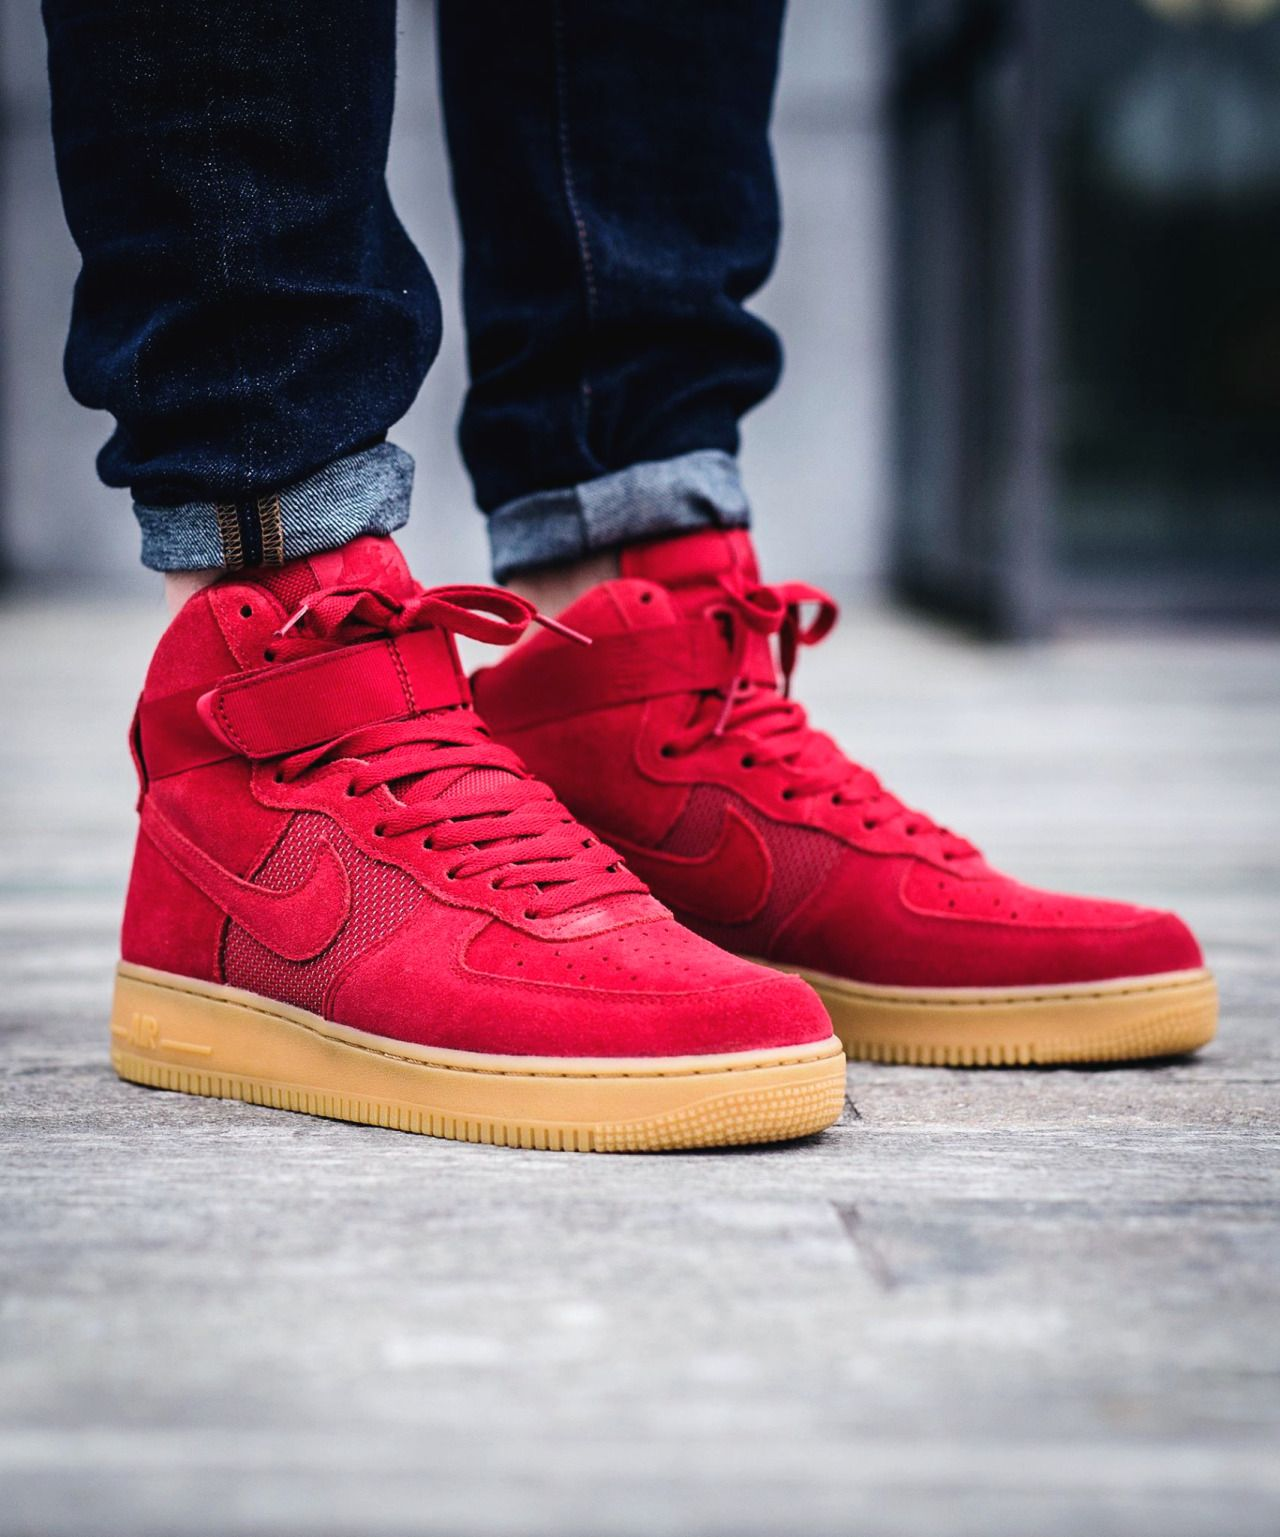 Authentic Mens Wms Nike Air Force 1 High'07 LV8 Suede Mens